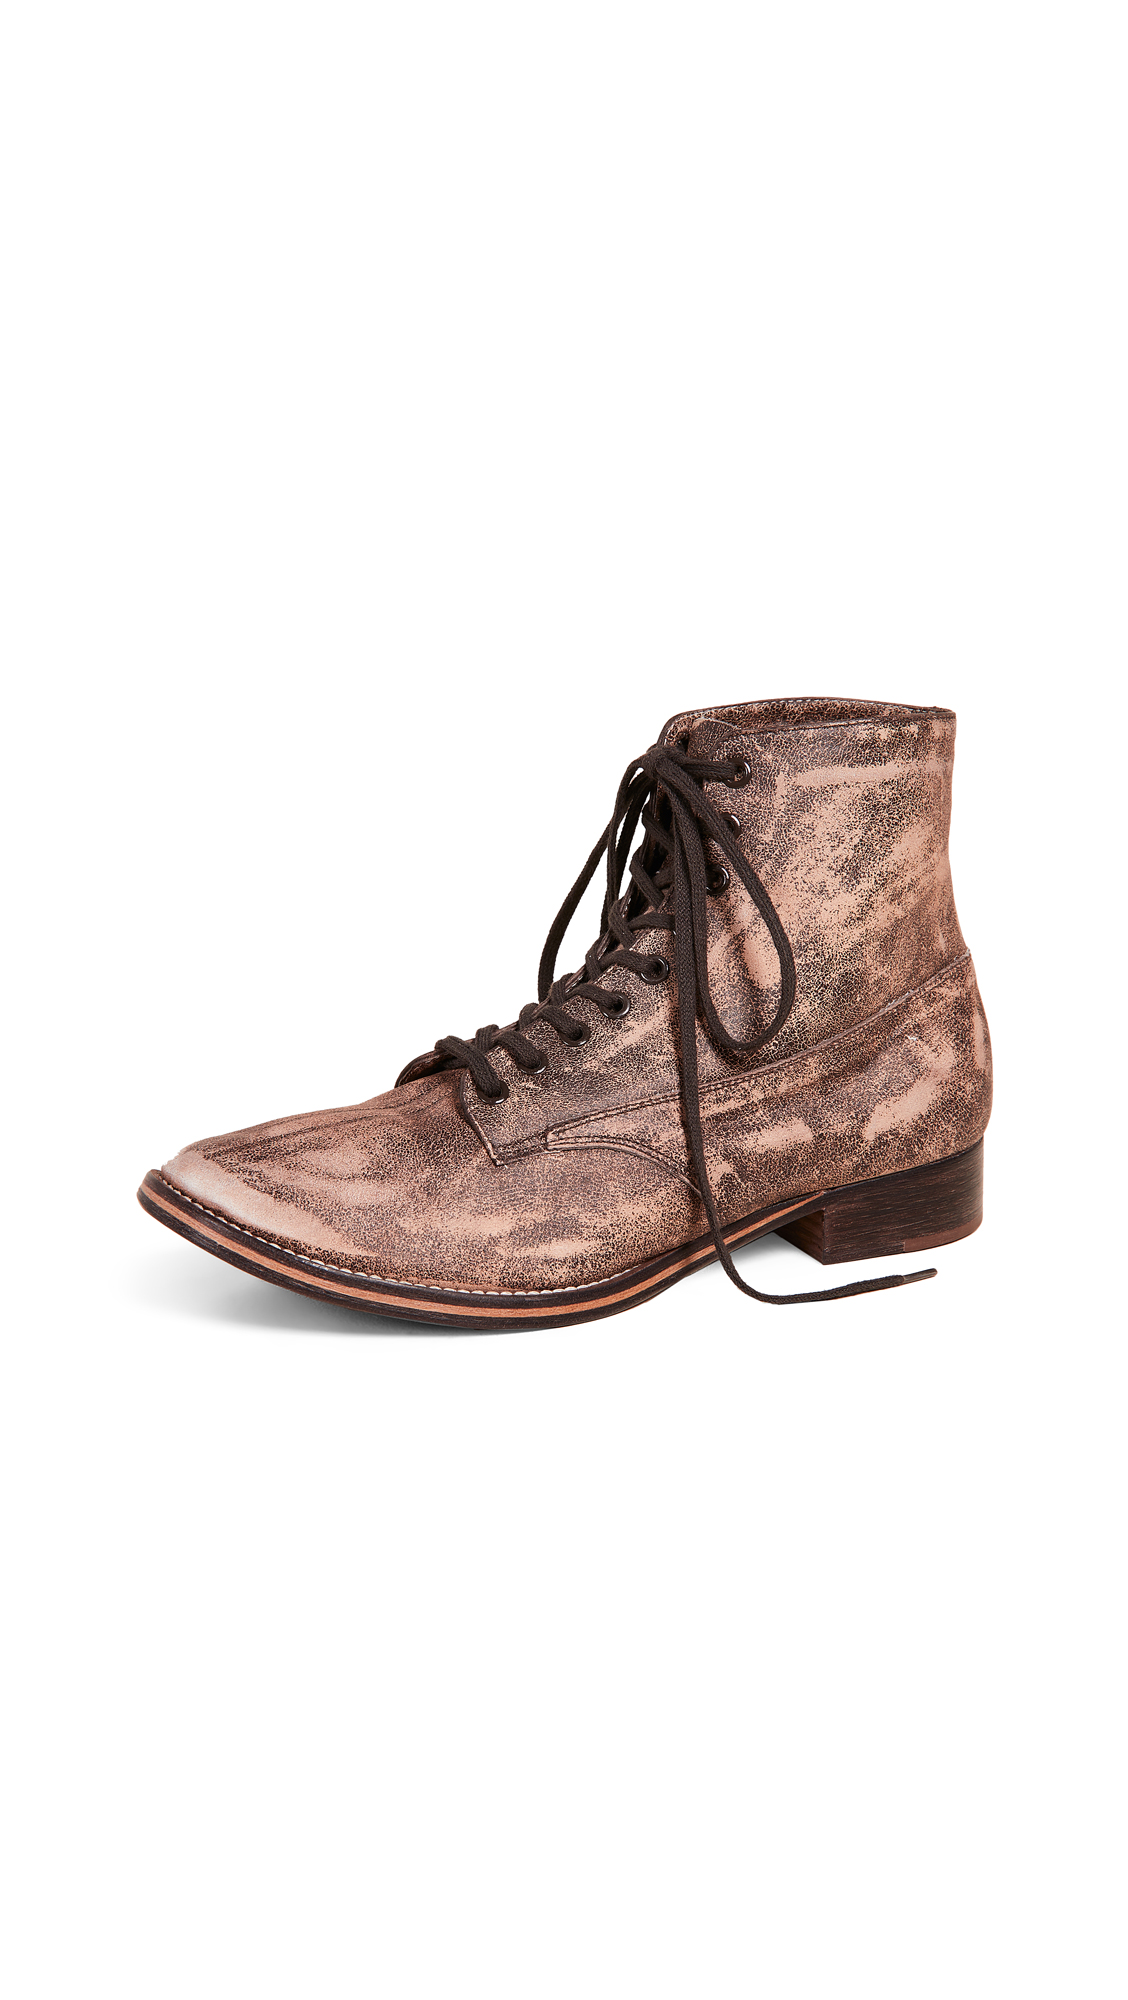 THE GREAT. The Boxcar Boots - Cordovan